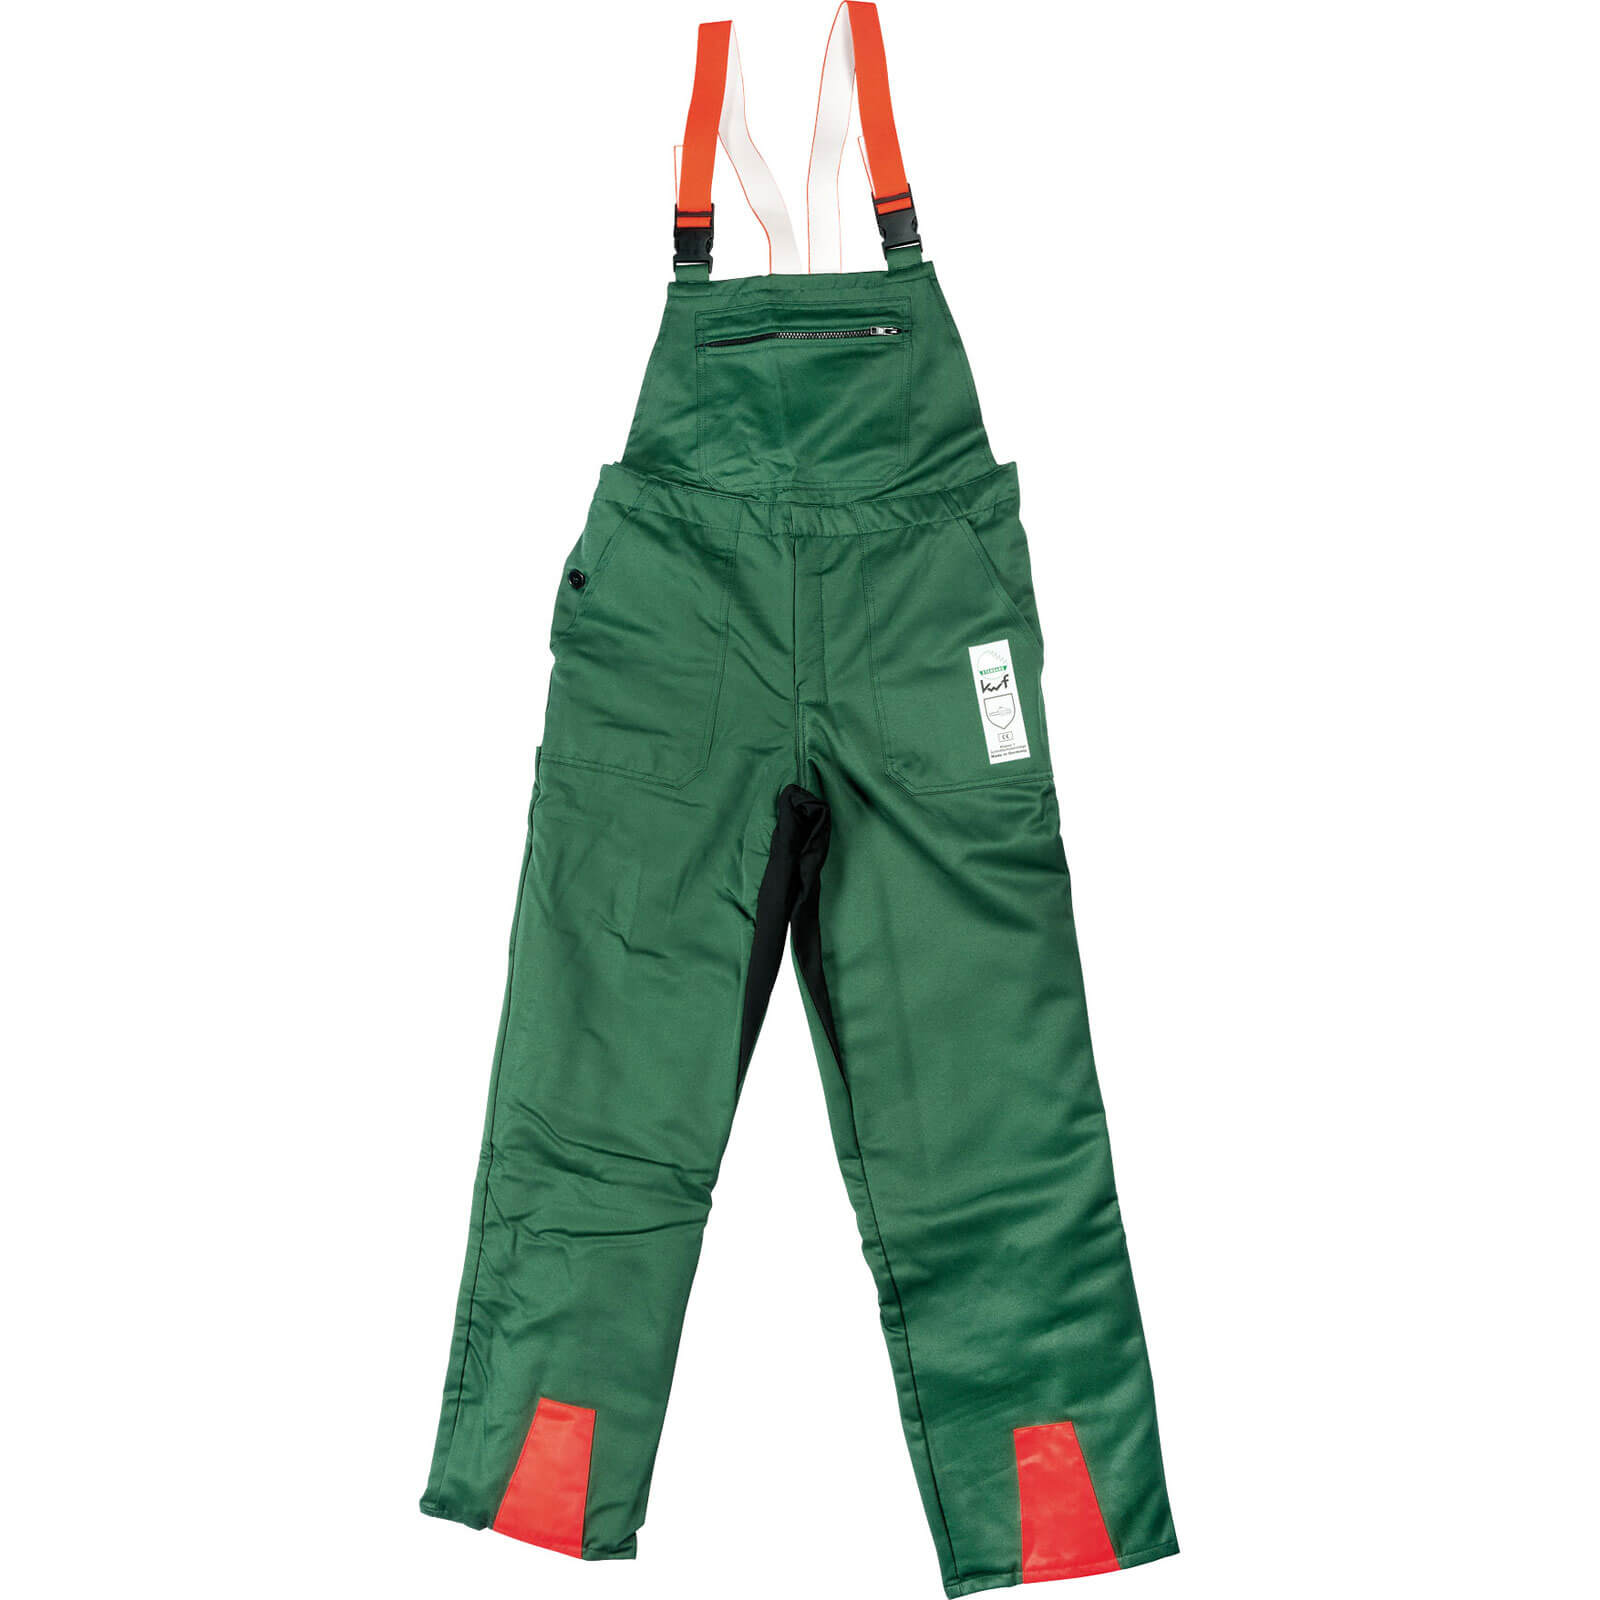 Draper Chainsaw Trousers (Large)